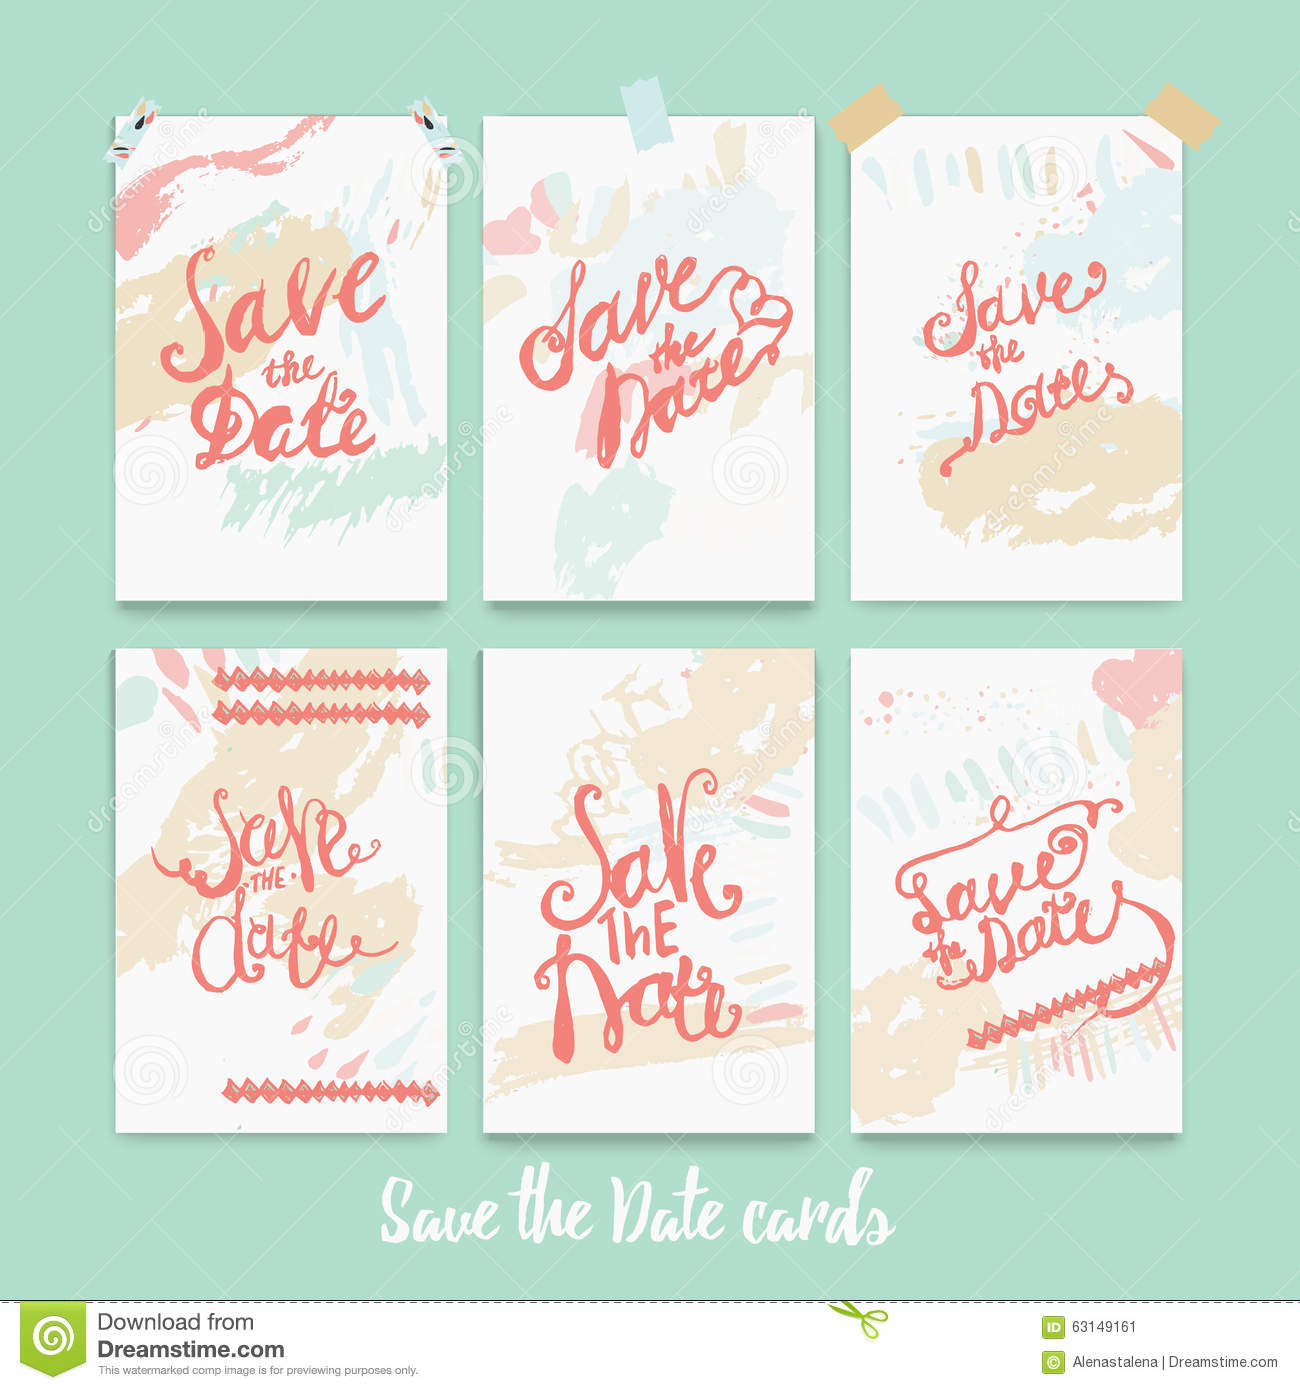 Ink dating date tags